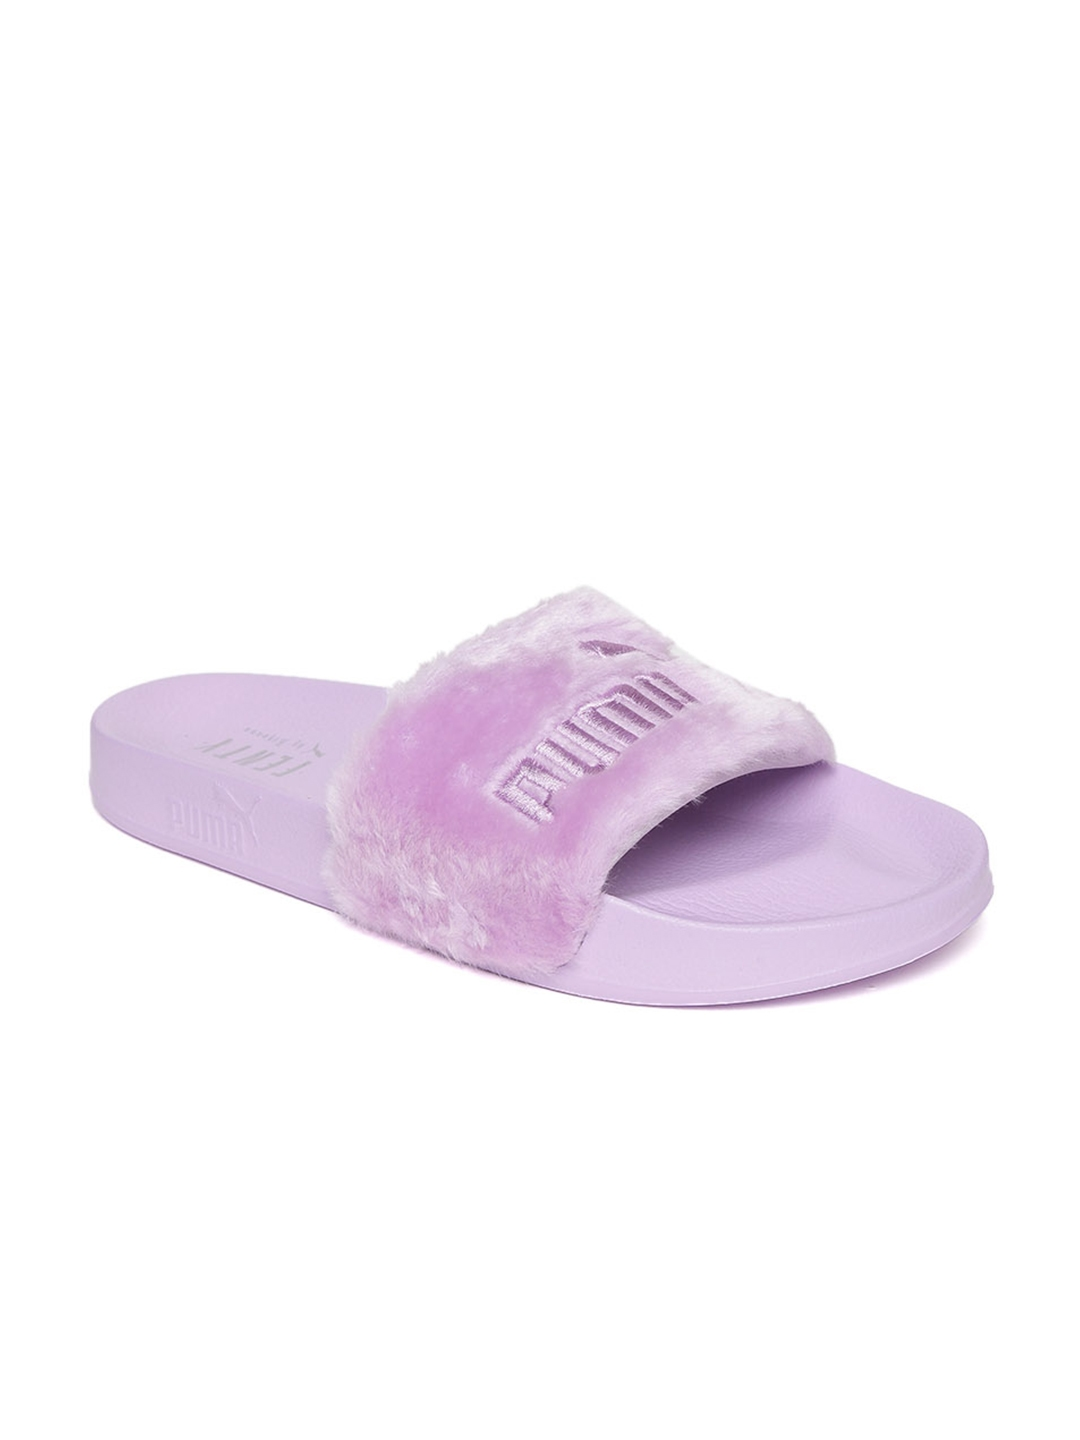 Buy Puma Unisex Lavender Faux Fur Slide Slip On Flip Flops - Flip ... 0792808294